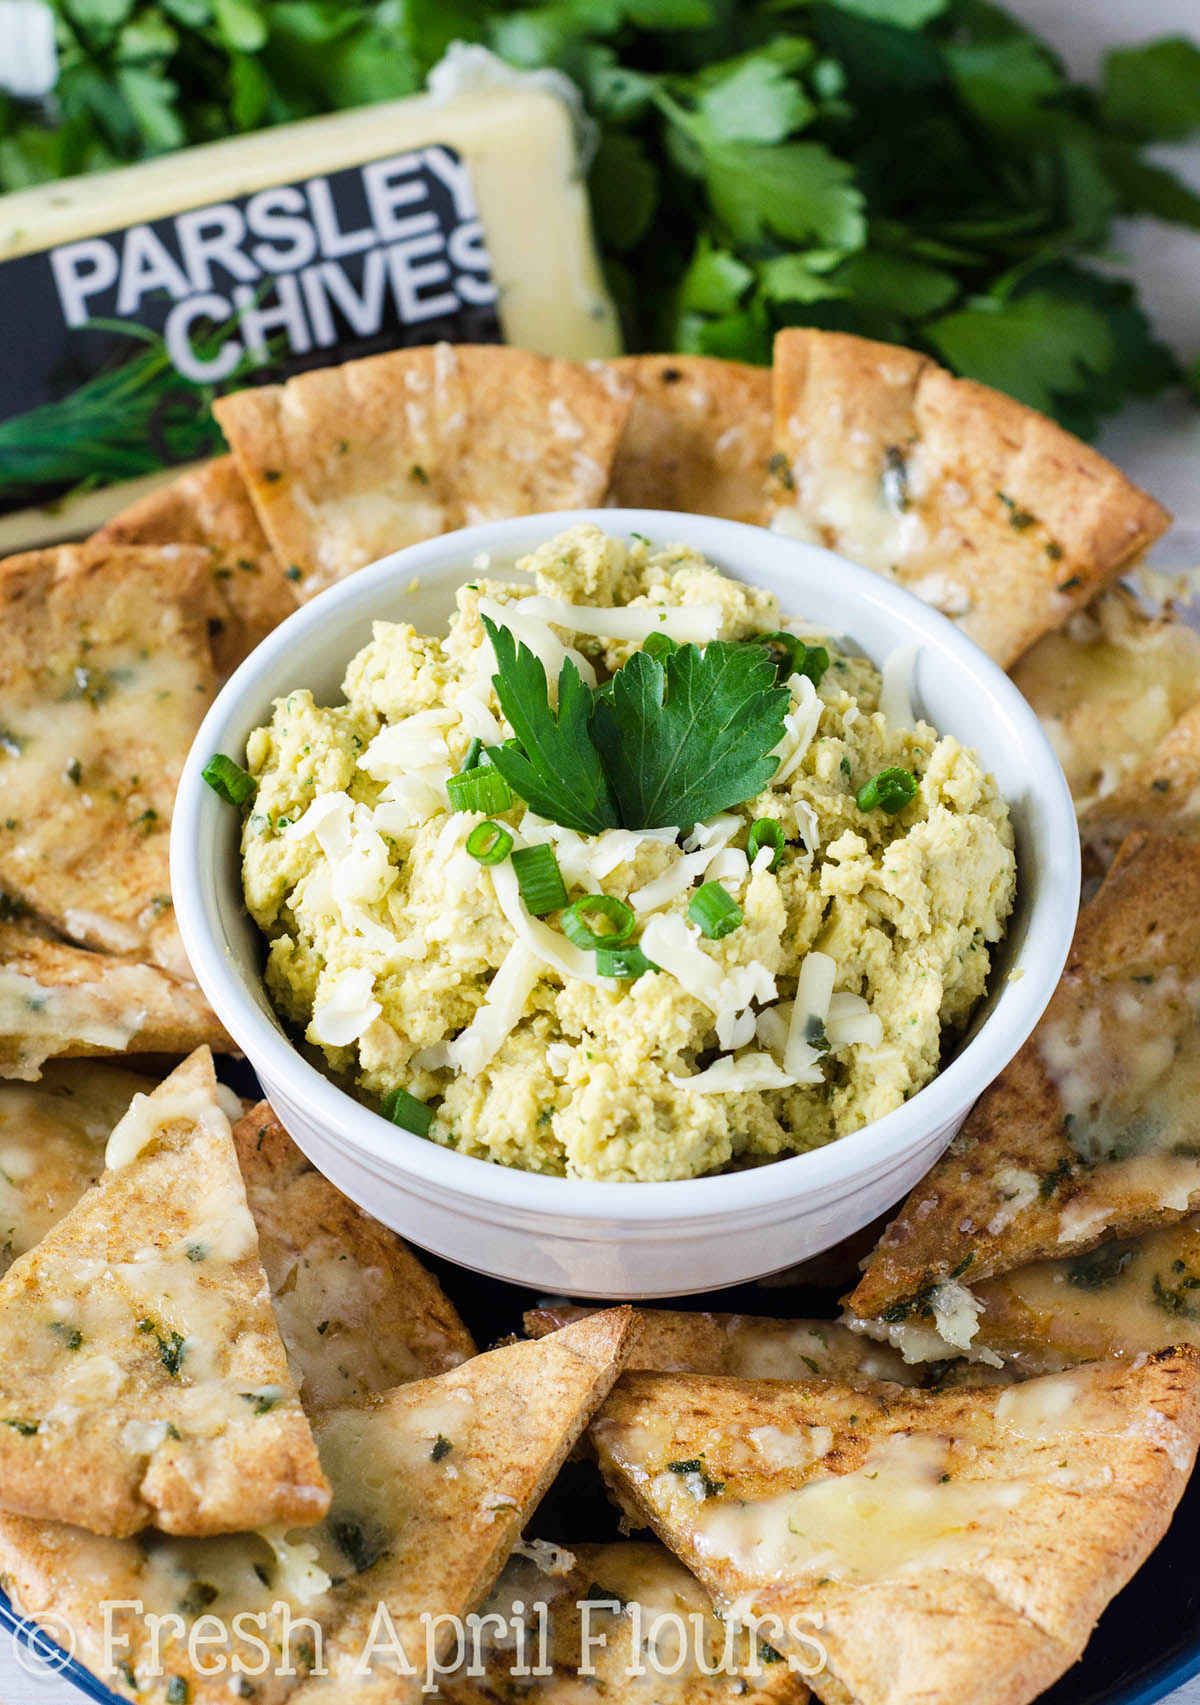 Cheesy Parsley & Chive Hummus {VIDEO}